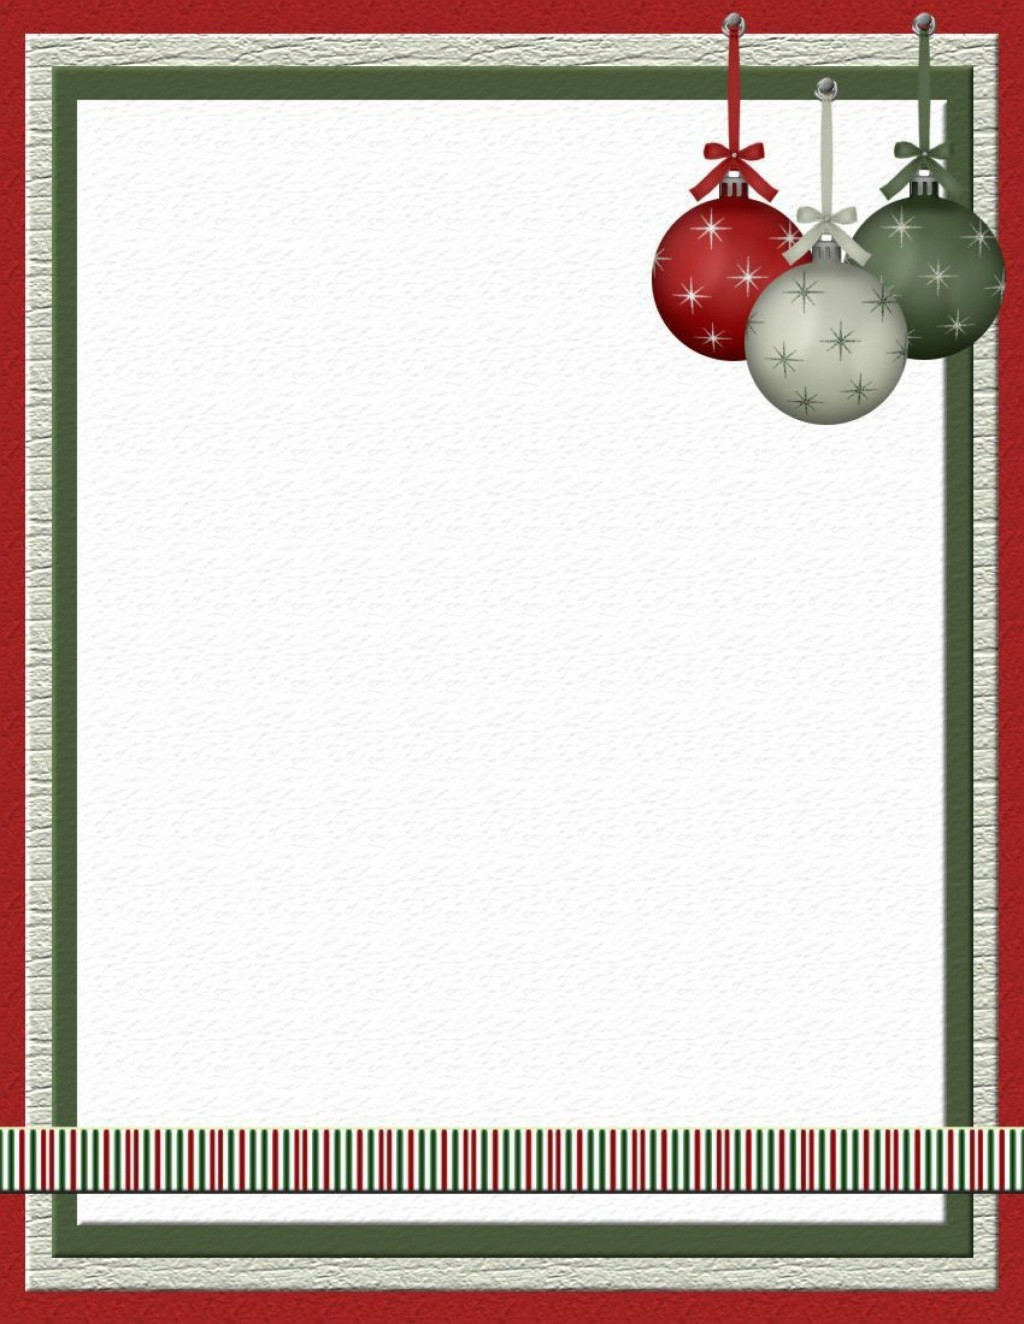 006 Stupendou Free Christian Christma Stationery Template For Word High Definition Large